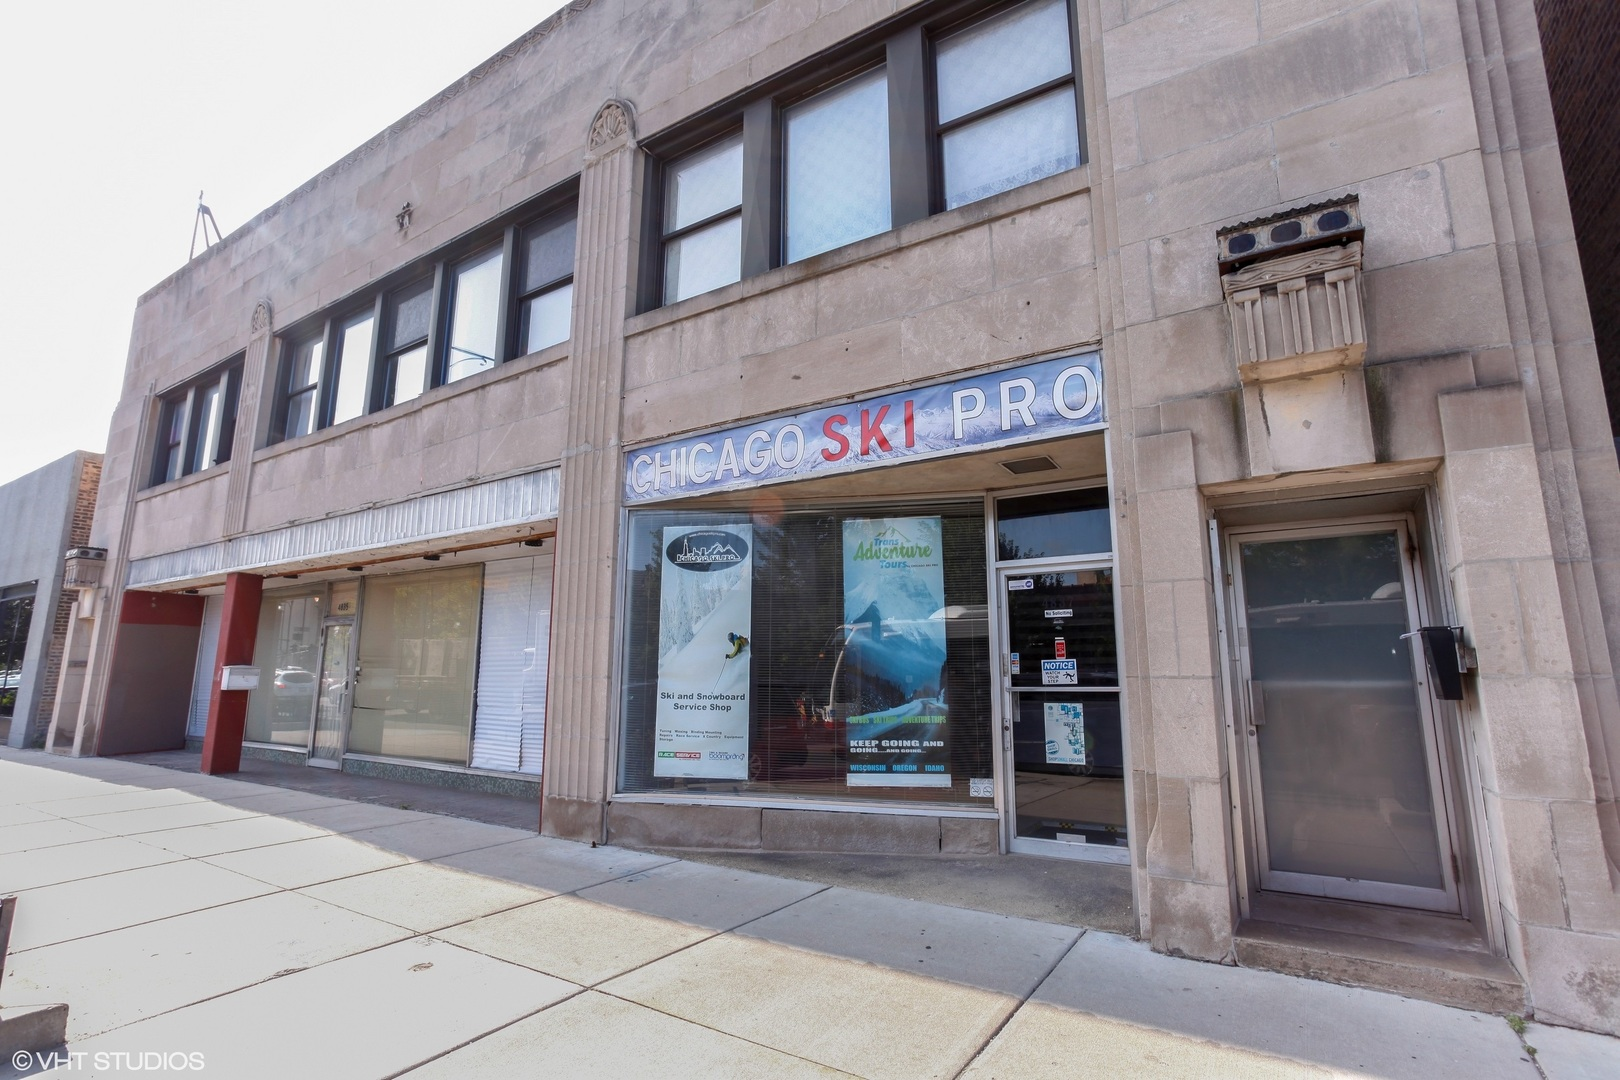 procasa realty ltd chicago real estate home search real estate